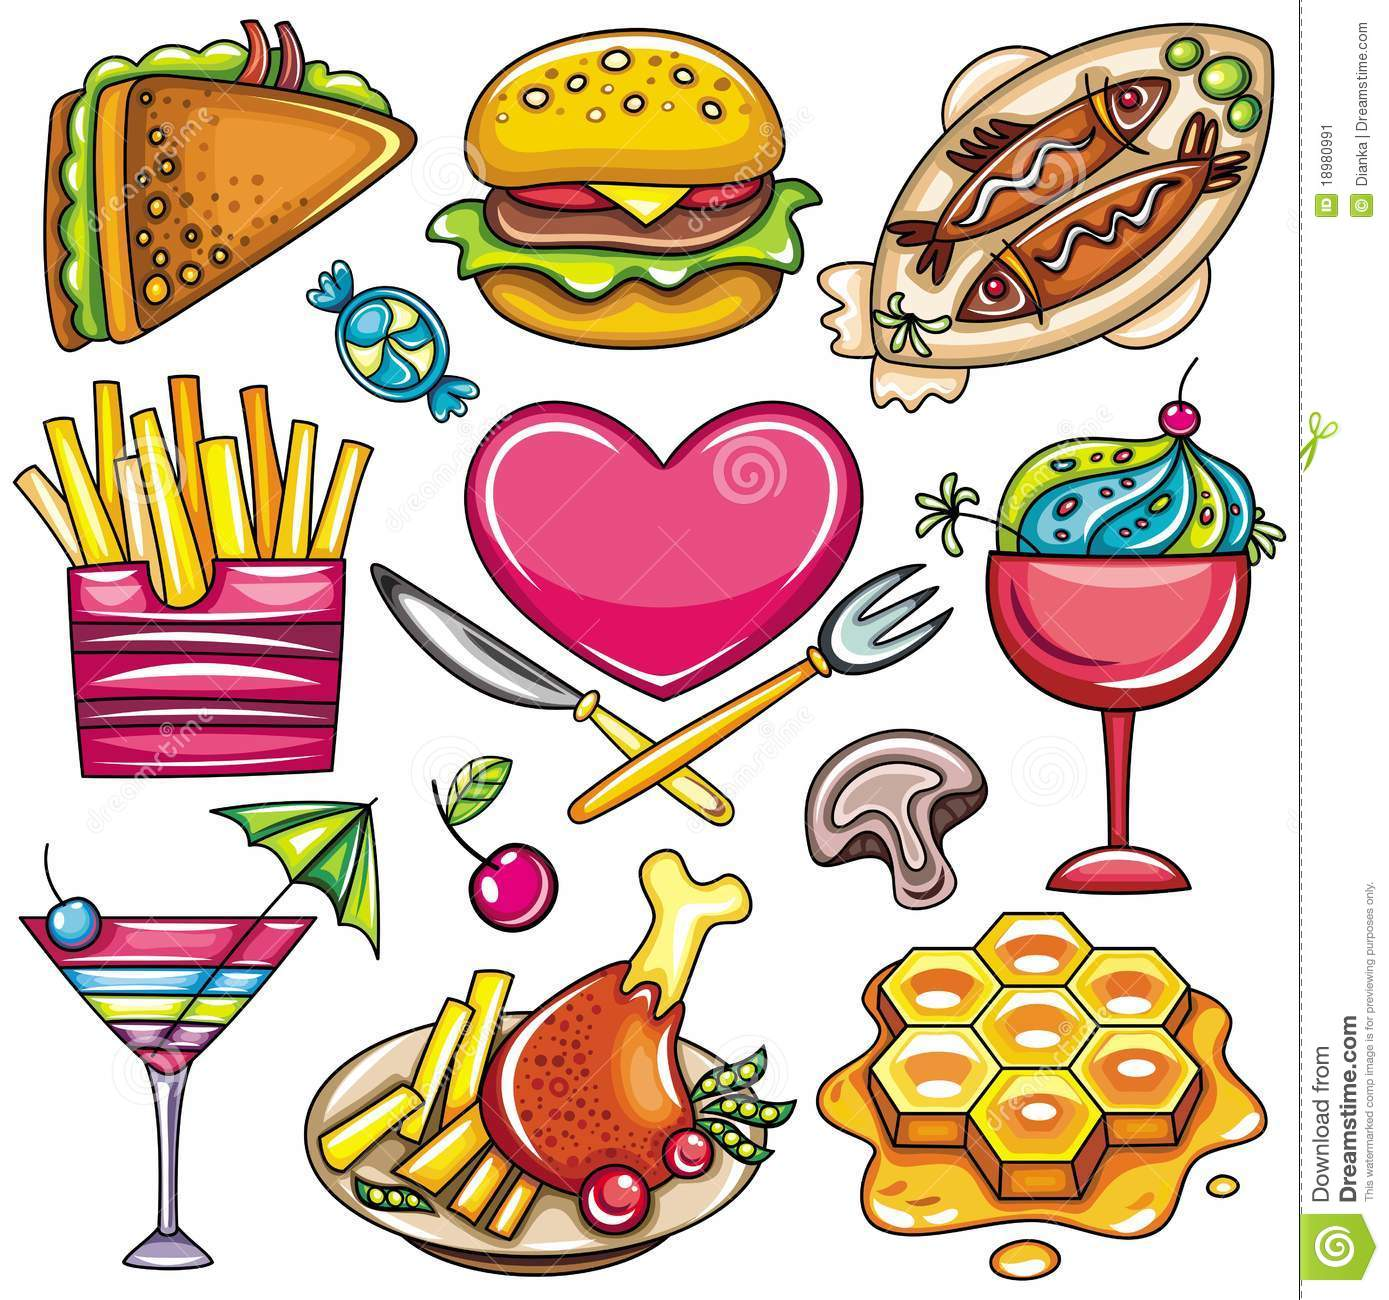 Colorful Food icons 1